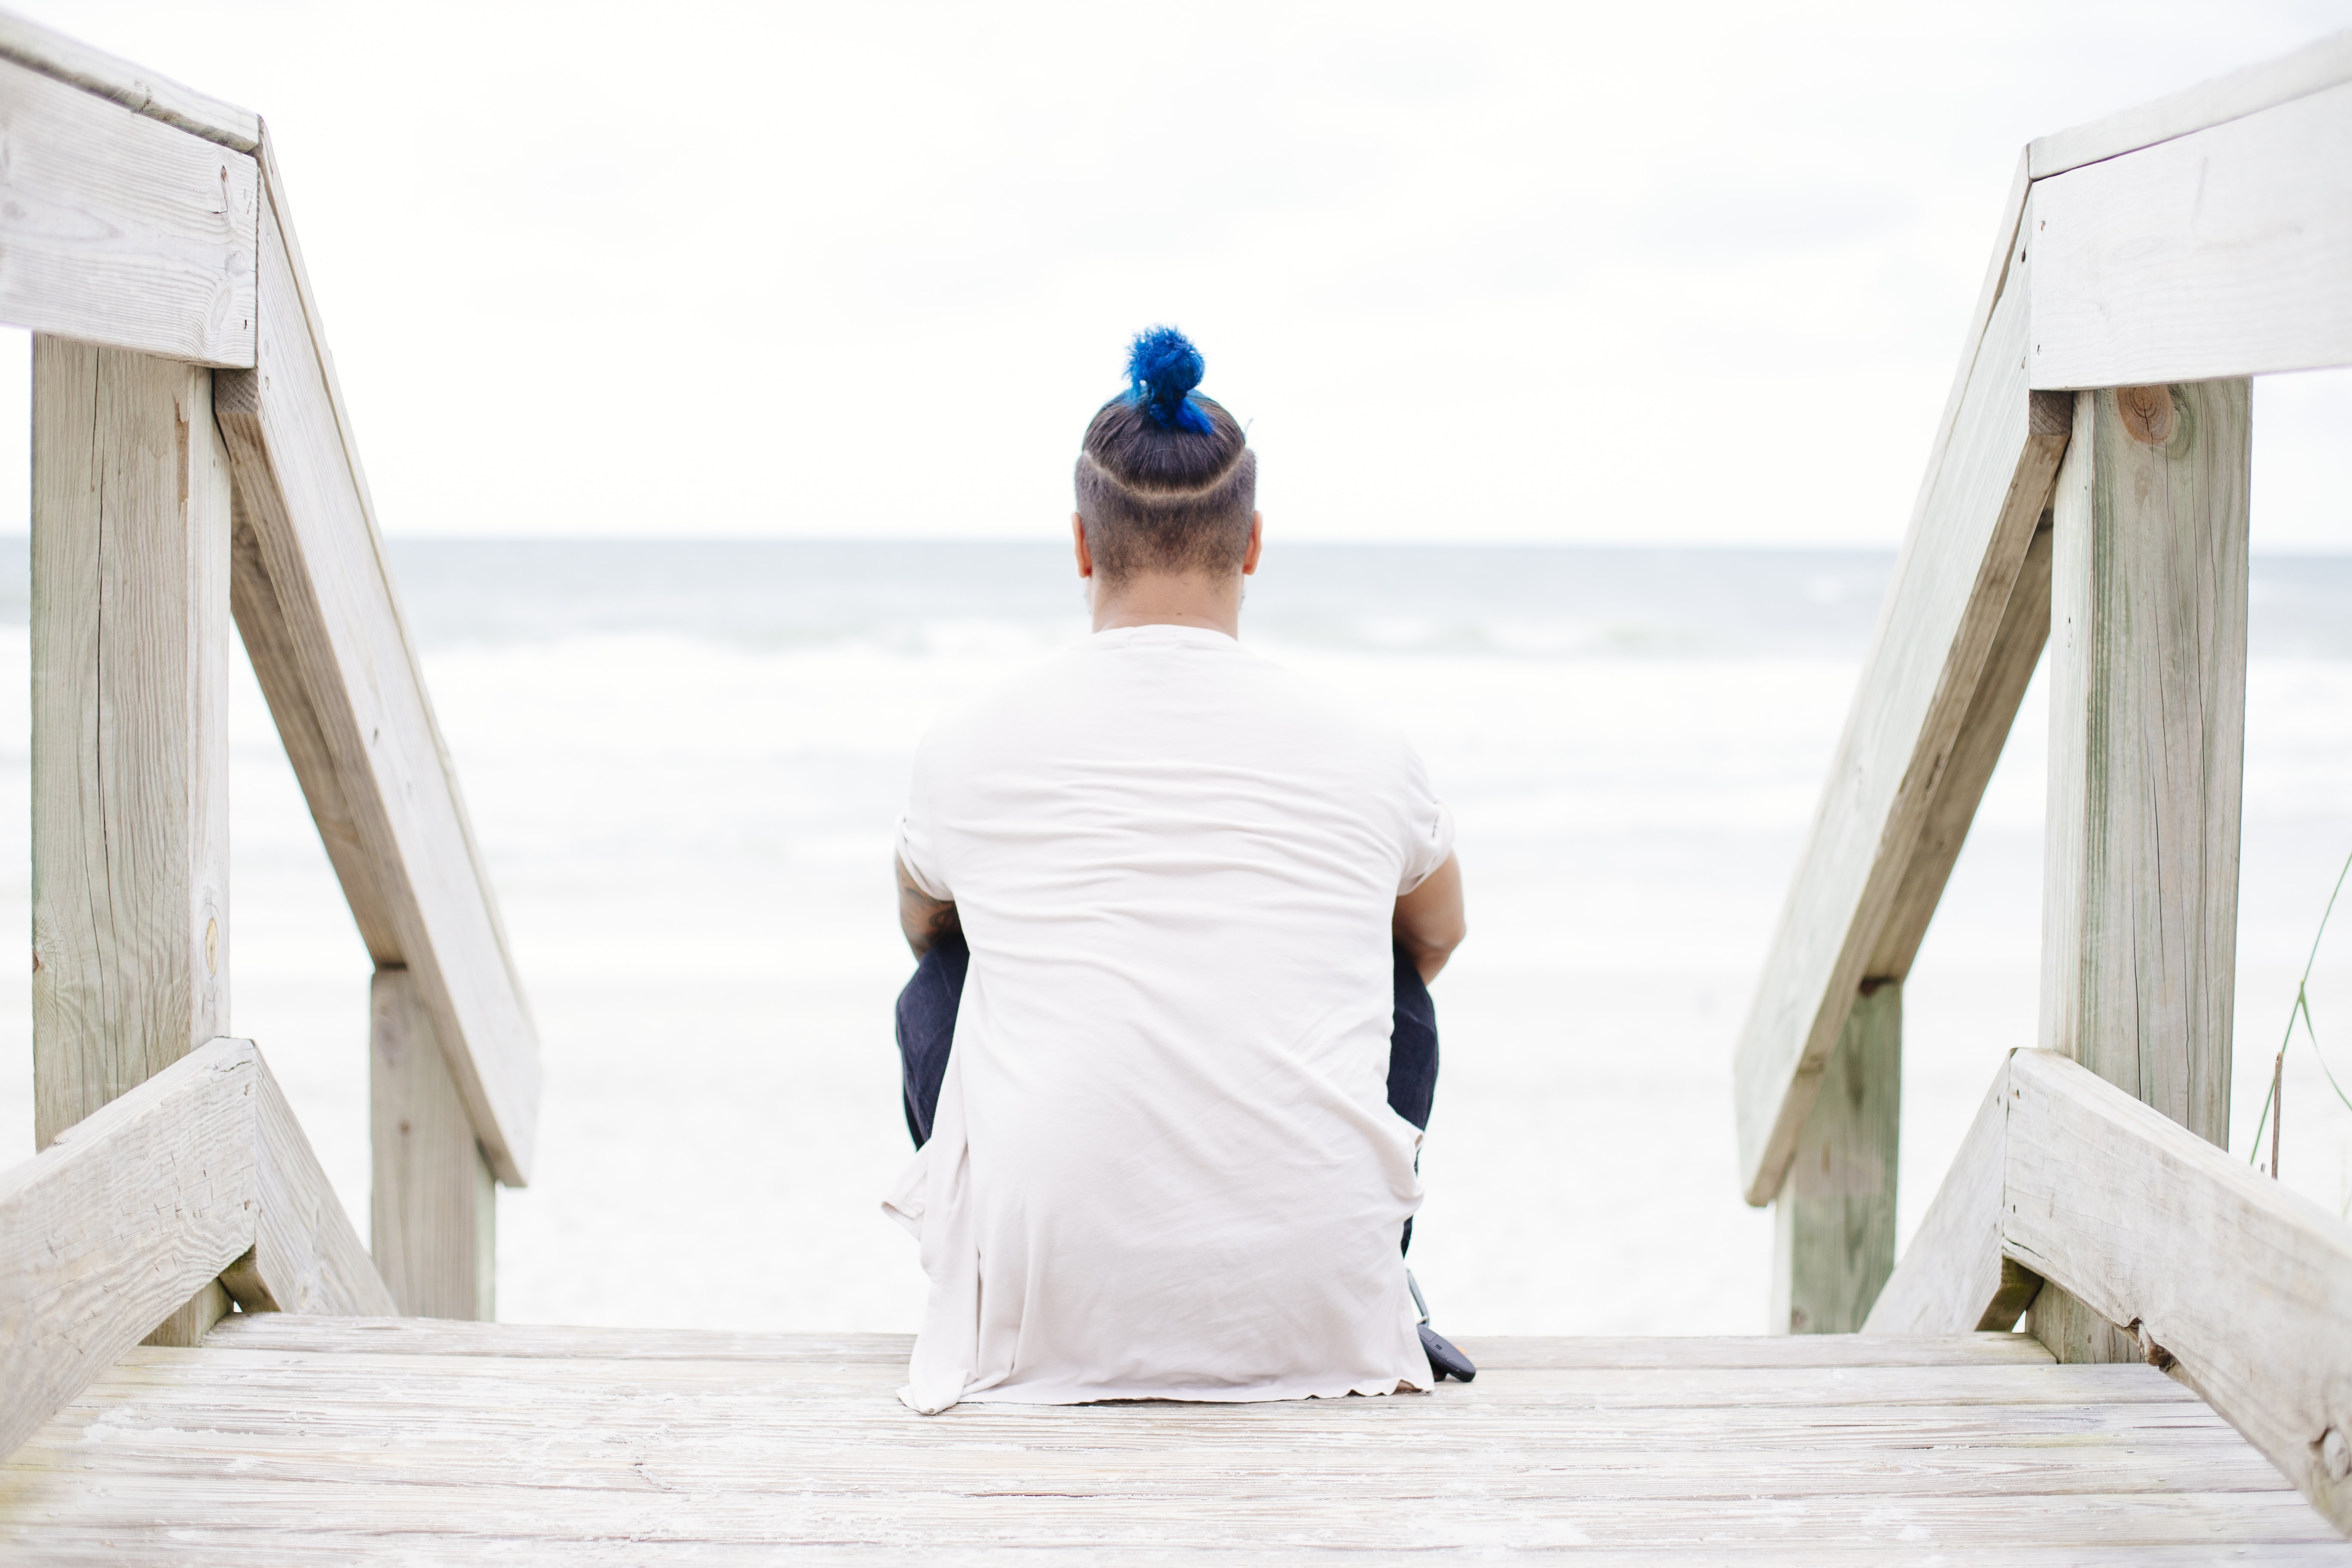 A man with a blue-dyed bun sitting on wooden stairs near the sea